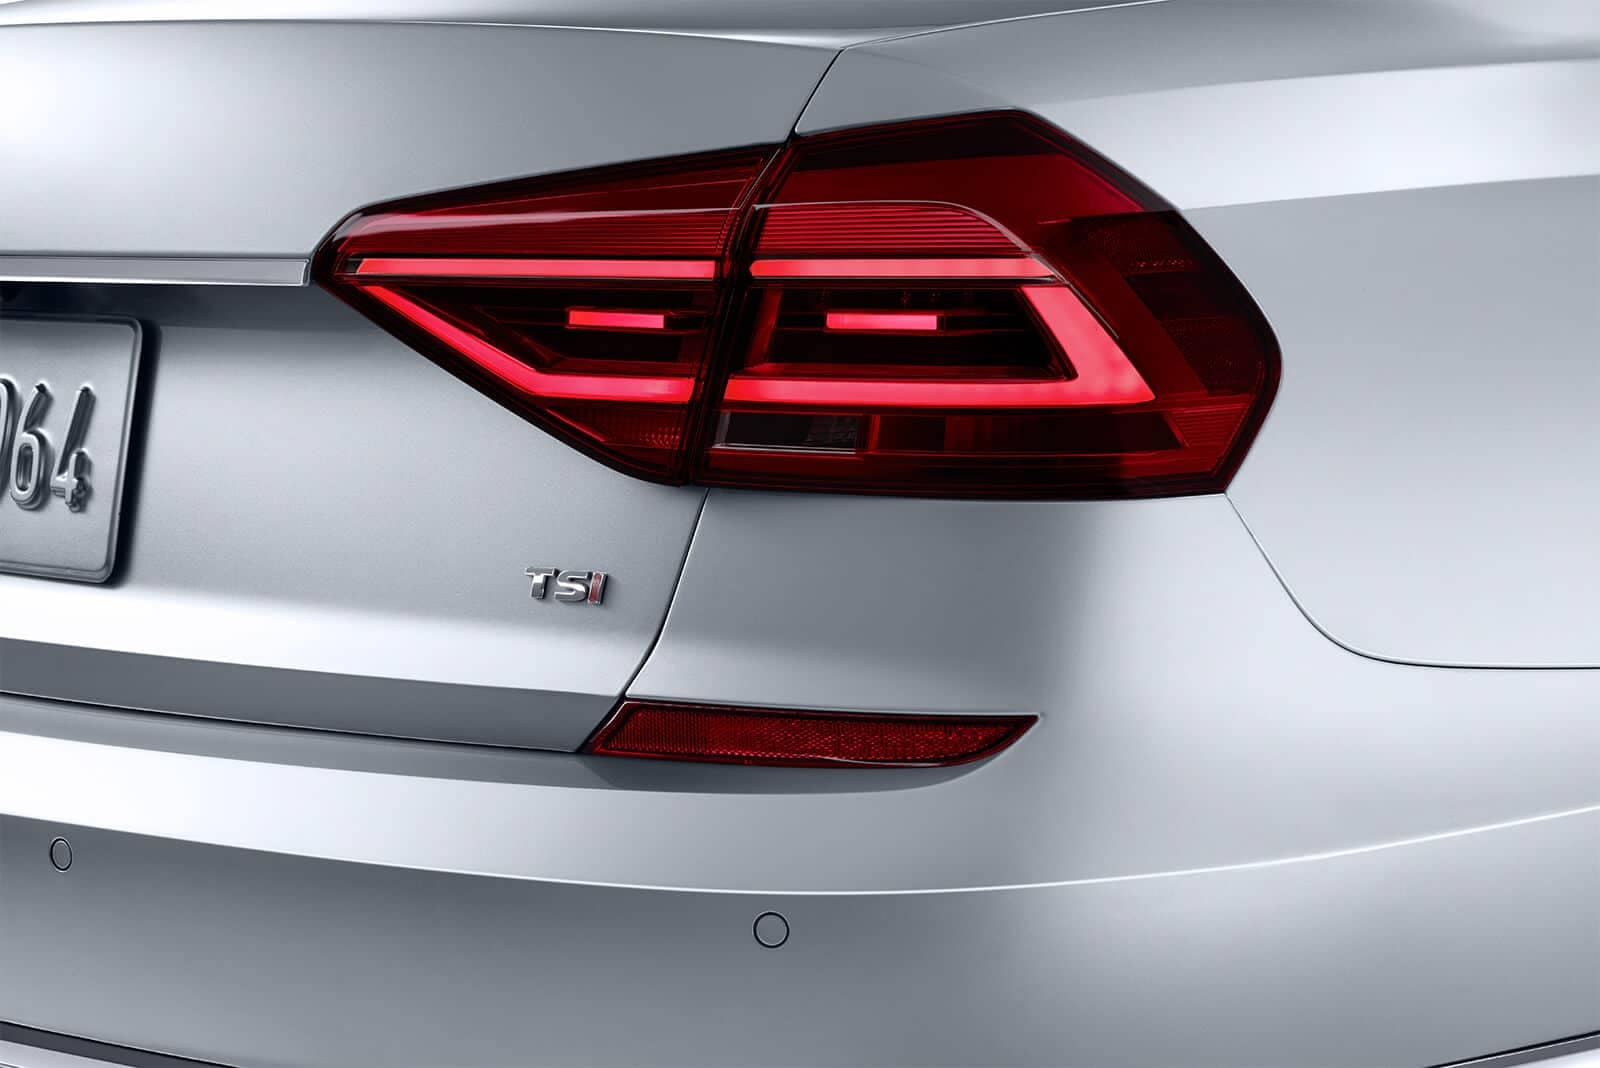 2019 Volkswagen Passat Tail Light